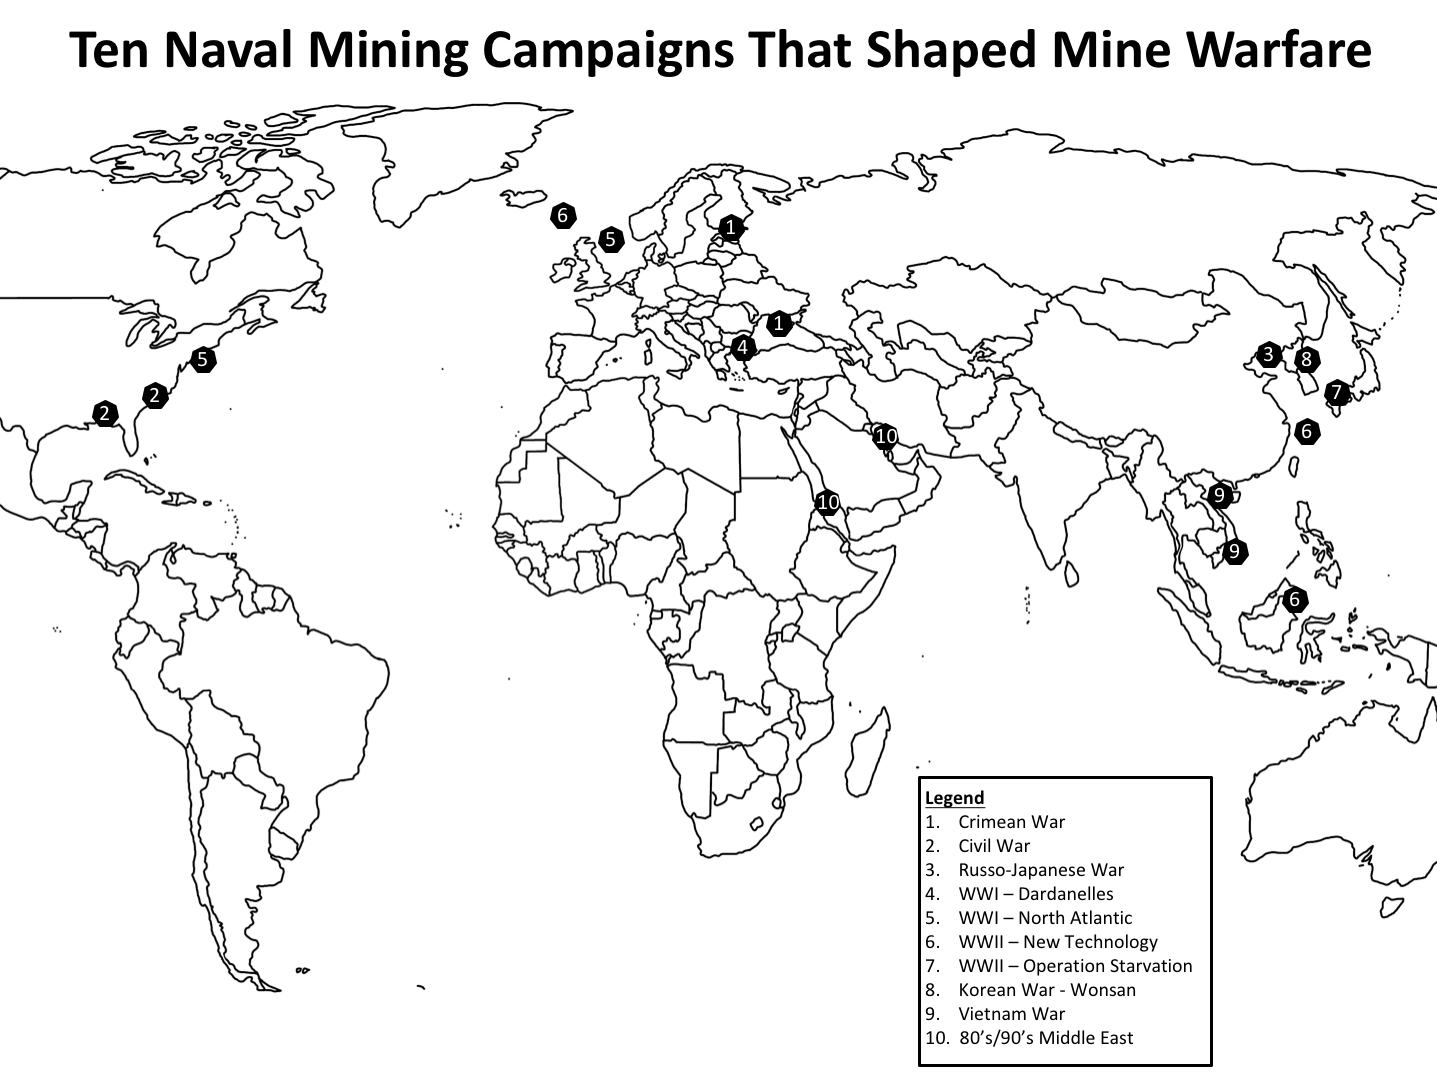 Usni Blog Blog Archive Ten Mining Campaigns That